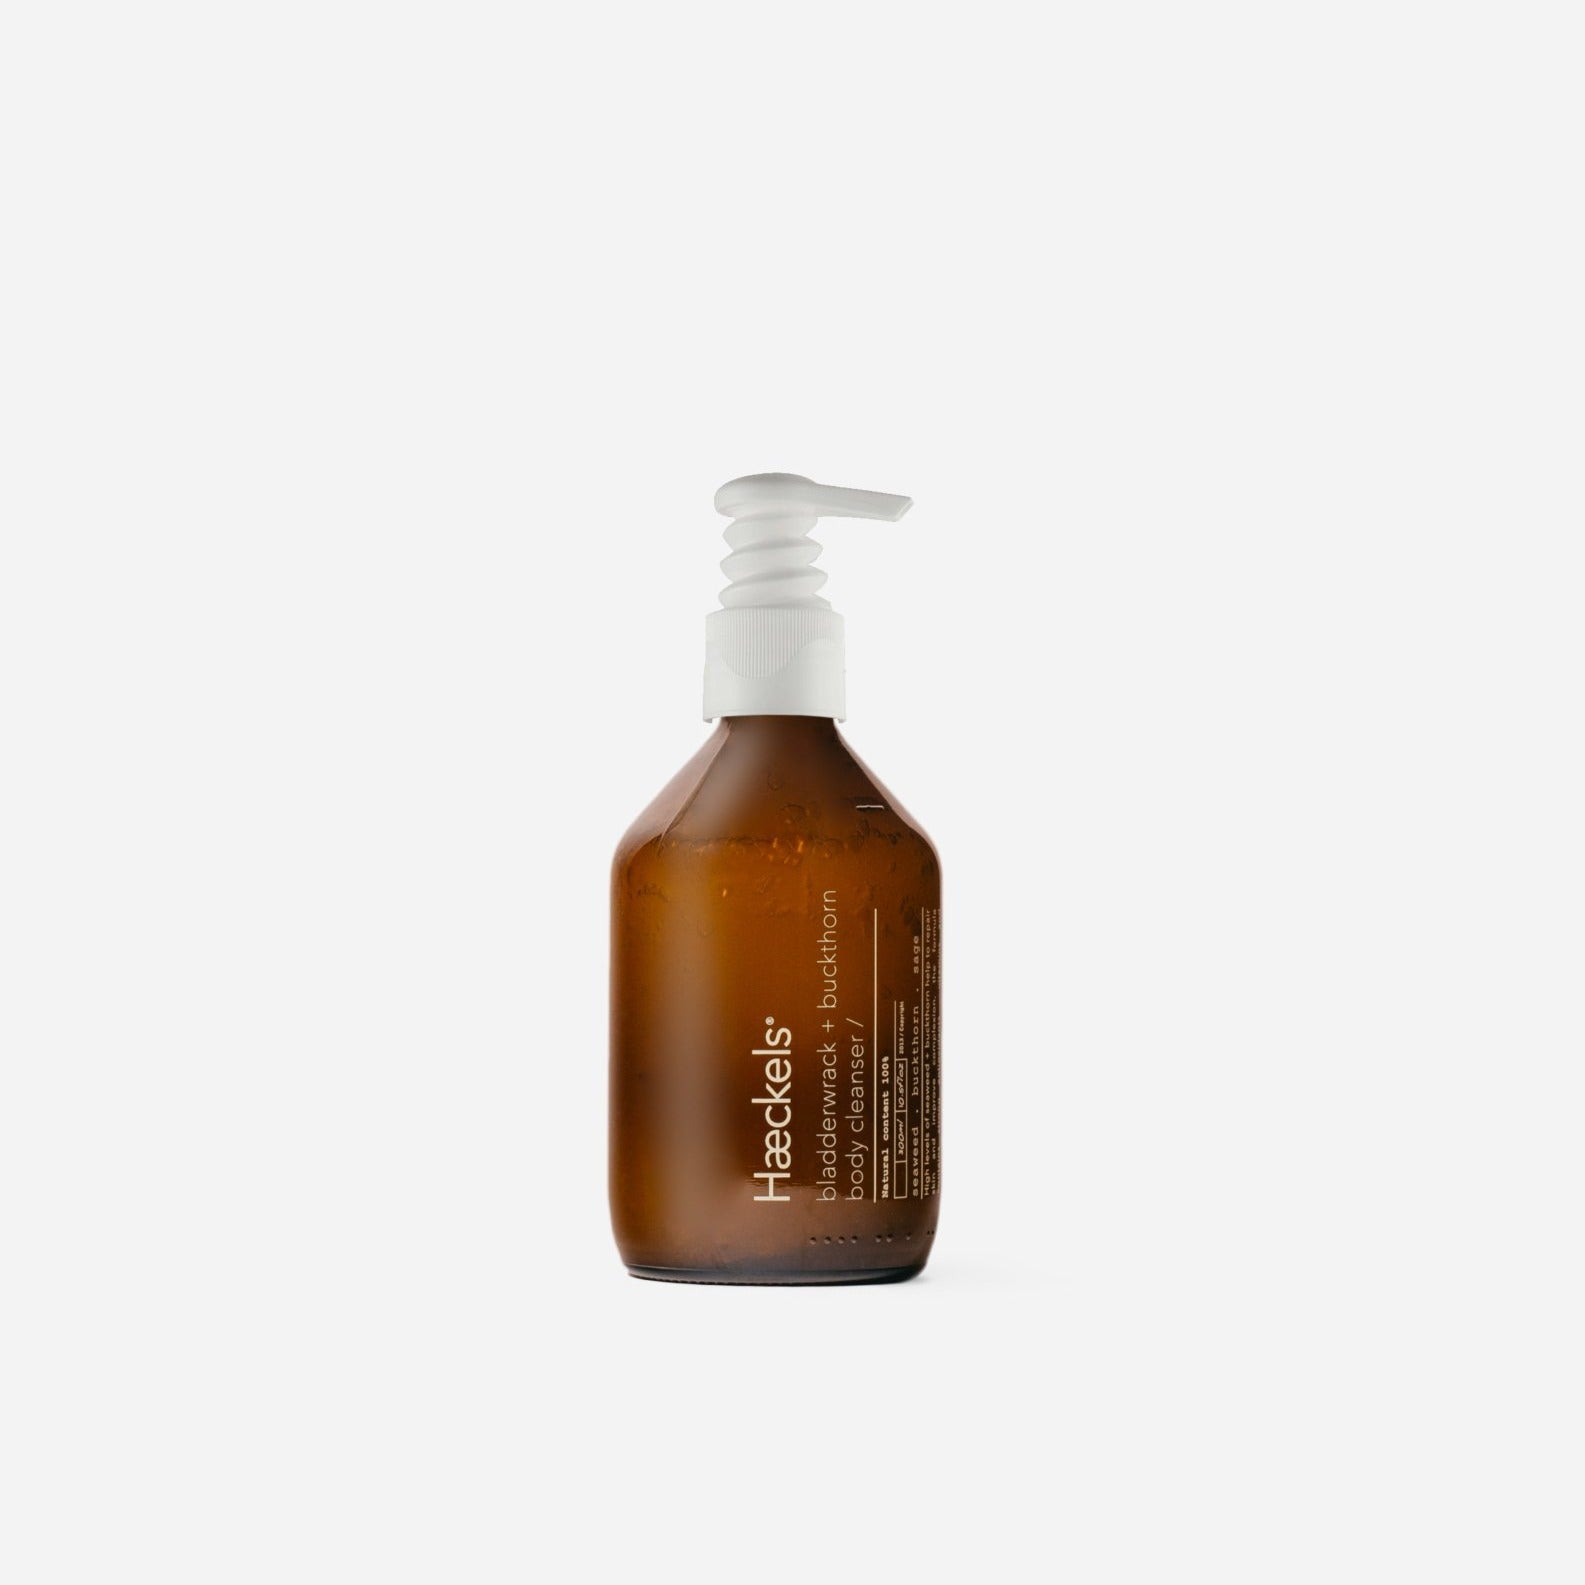 Haeckels Body Cleanser